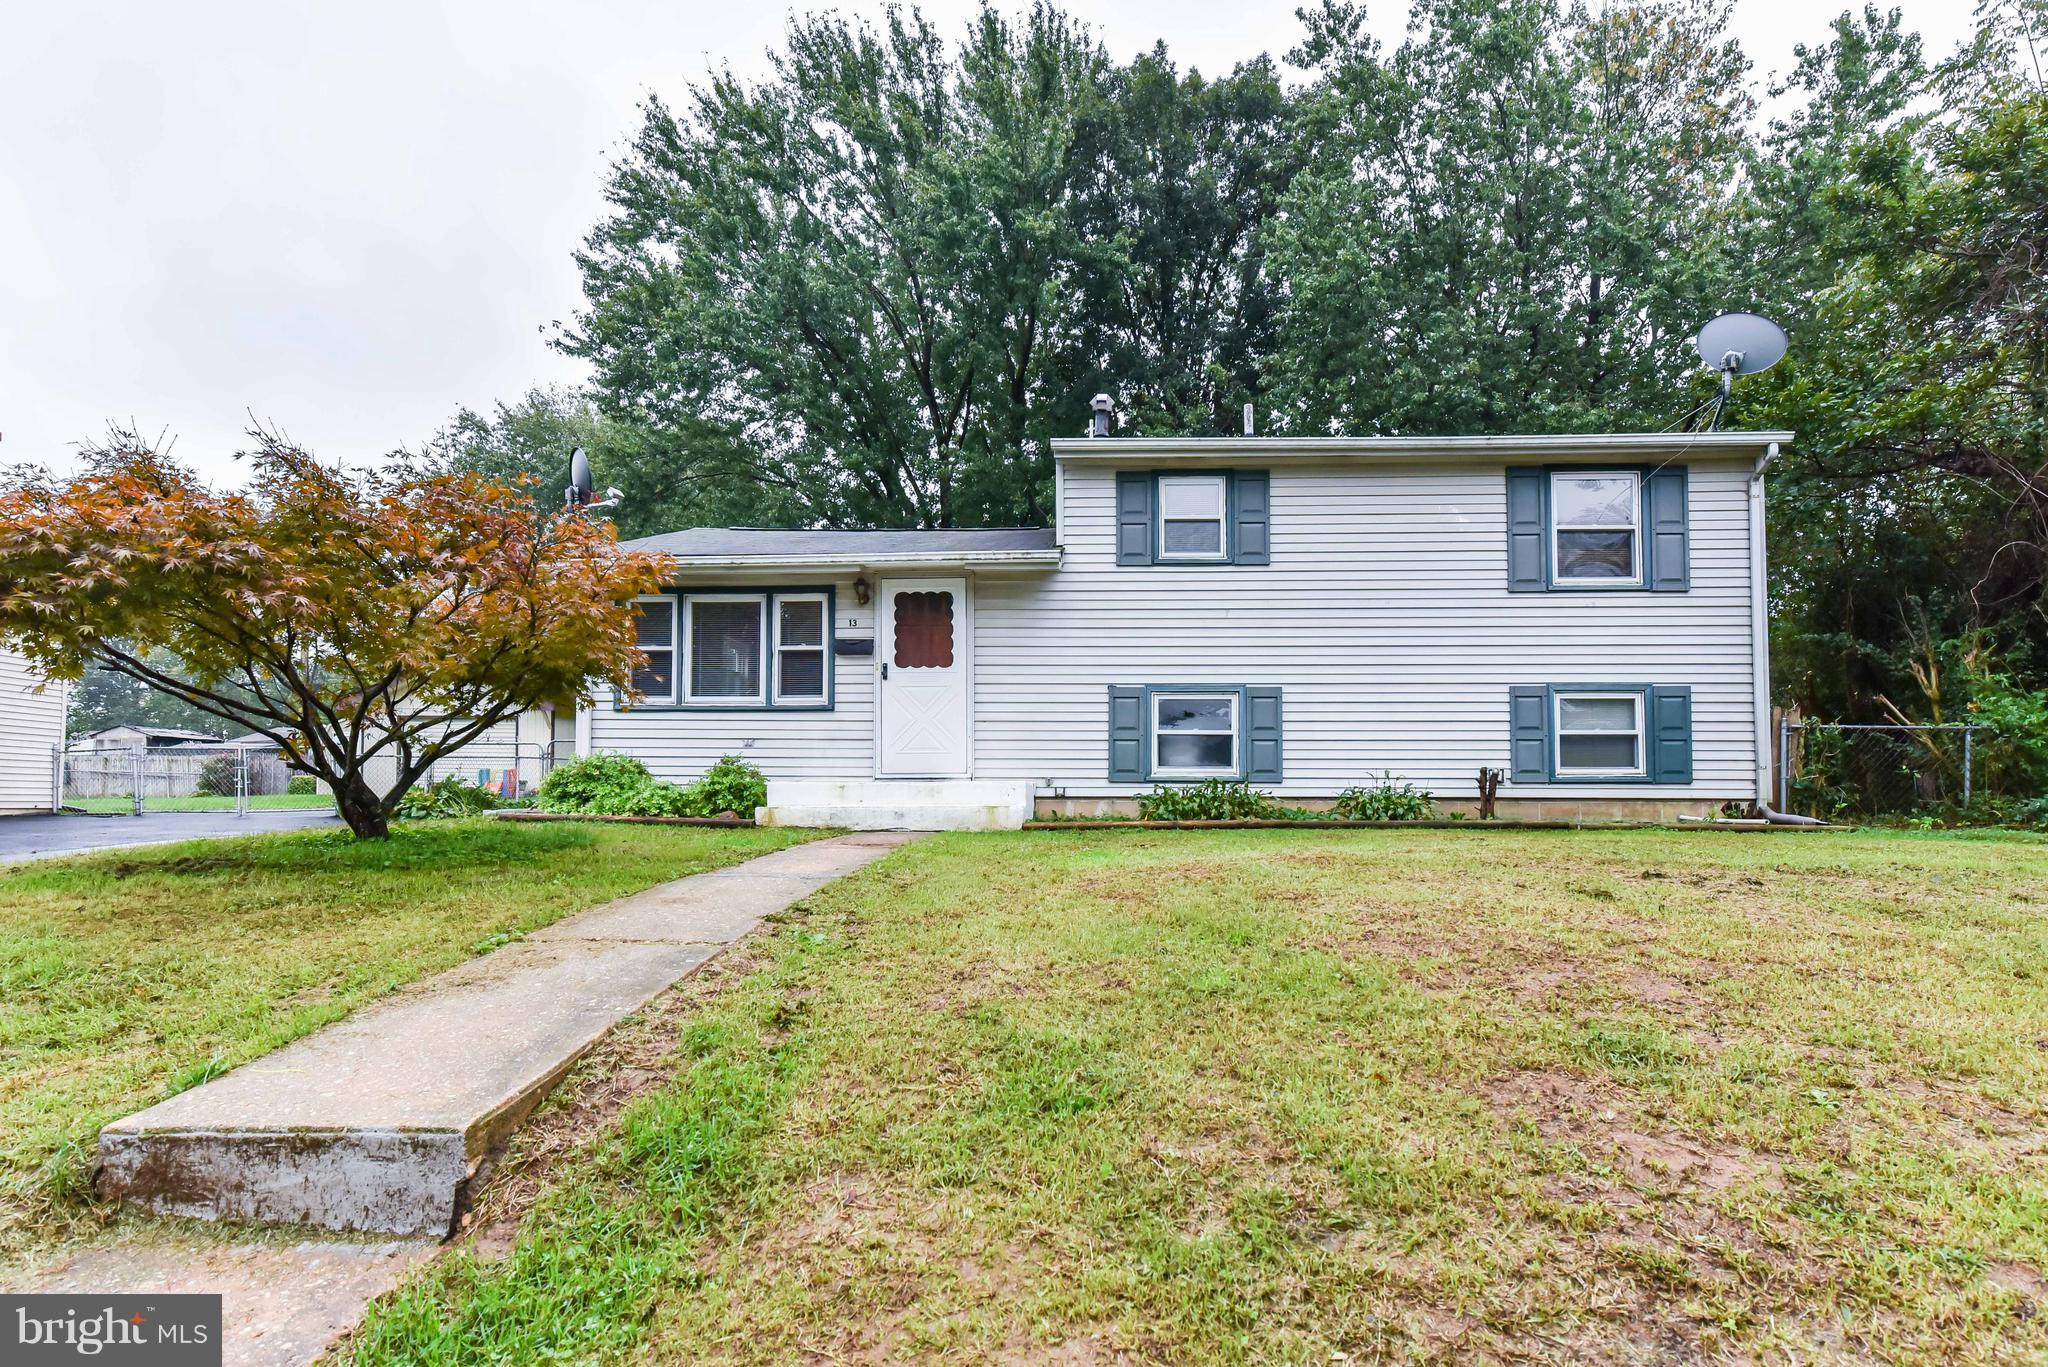 Move in ready home conveniently located minutes from Newark and I-95. Kitchen opens to family room w